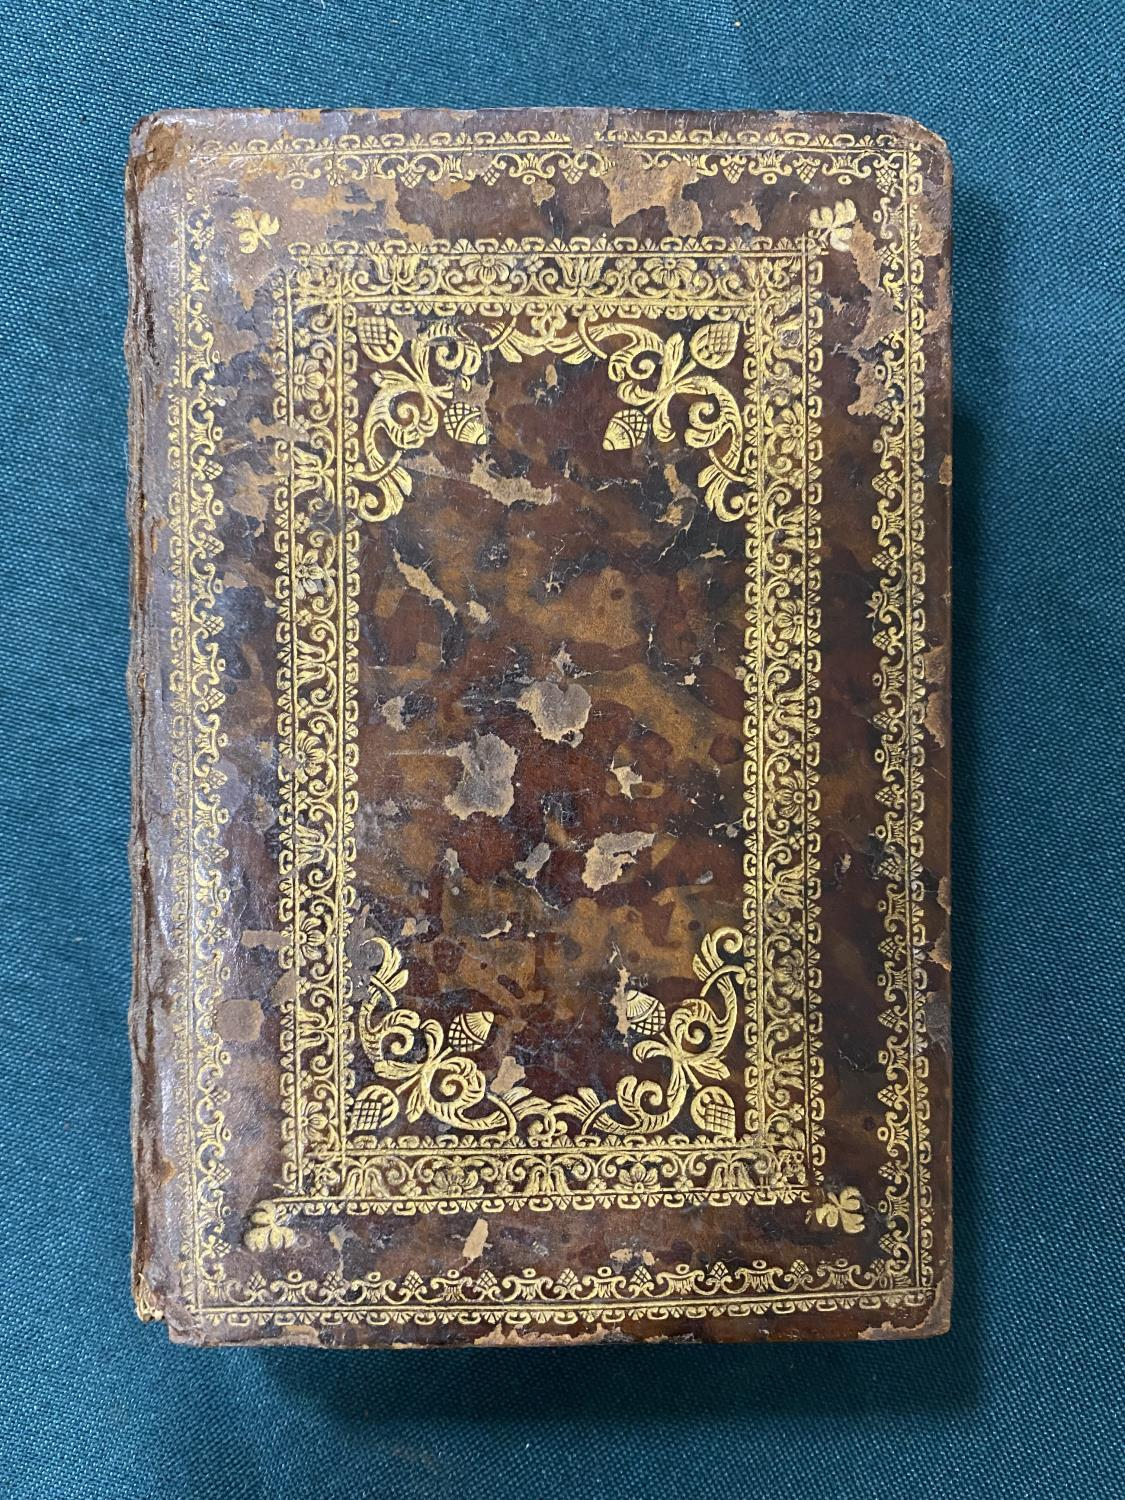 [Anon] Beatae Mariae Virginis Officium, engraved throughout, frontispiece, vignette on title and